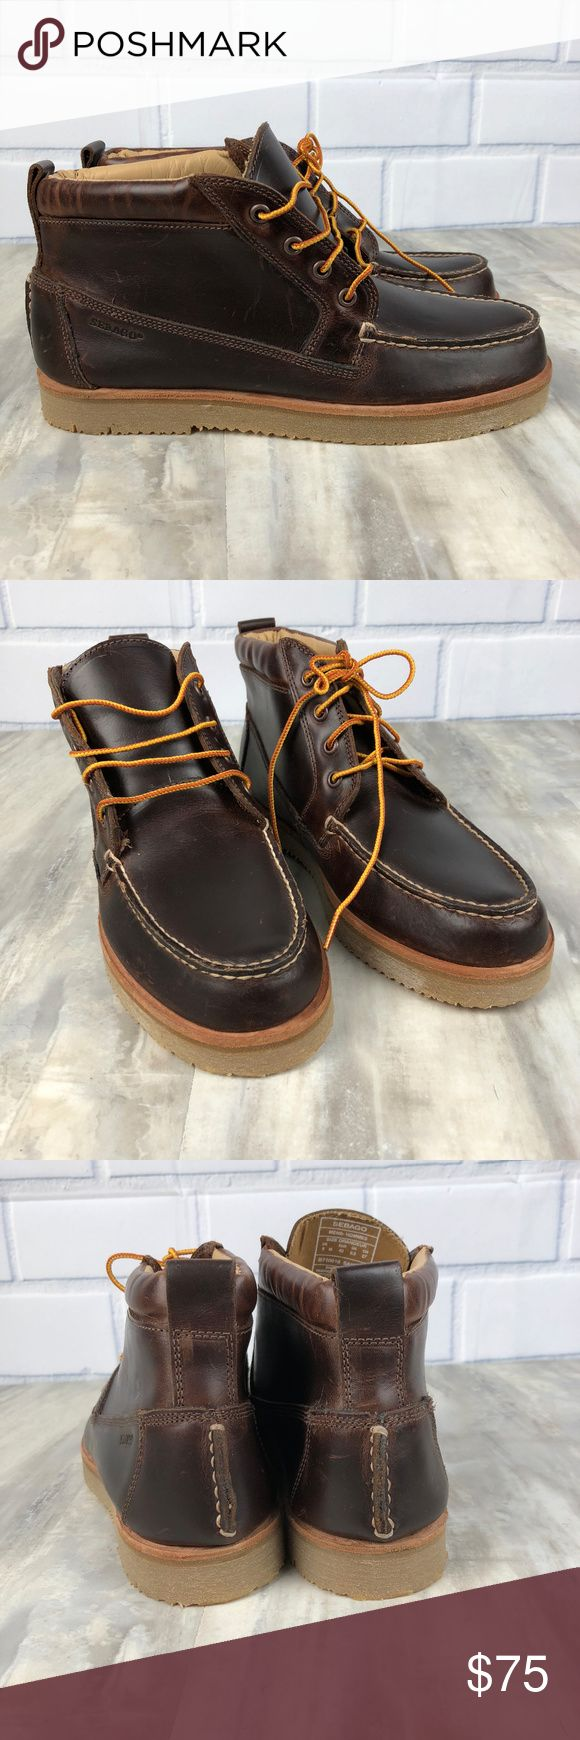 Sebago Mens Leather Chukka Boots New without box Sebago Chukka Boots Retail $160 Size 9M Nonsmoking home May have some marks from being stored without the box - please see all the photos Leather Lace up Sebago Shoes Chukka Boots